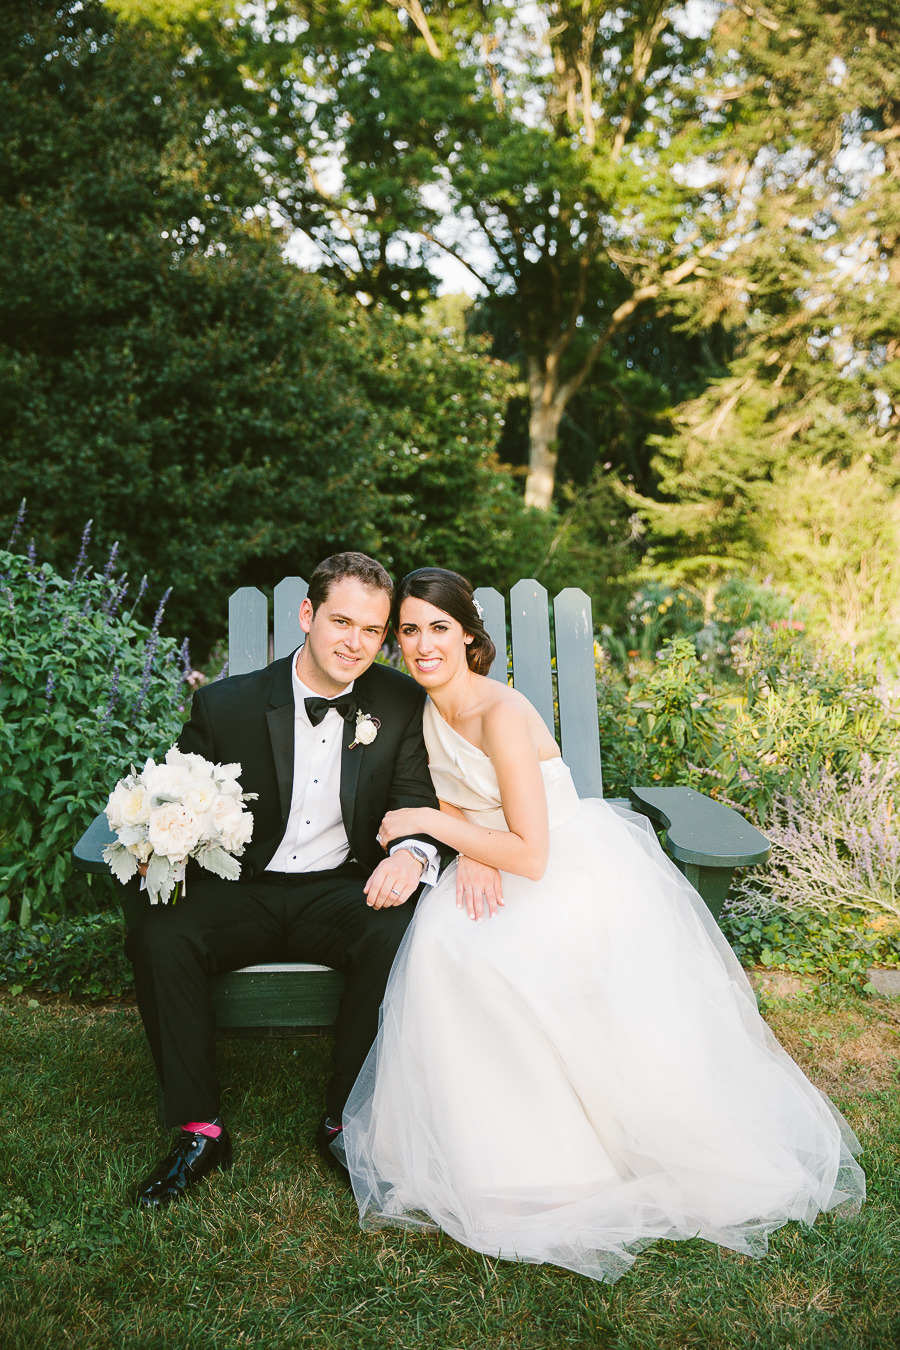 Rhode-Island-wedding-24-11232014ak